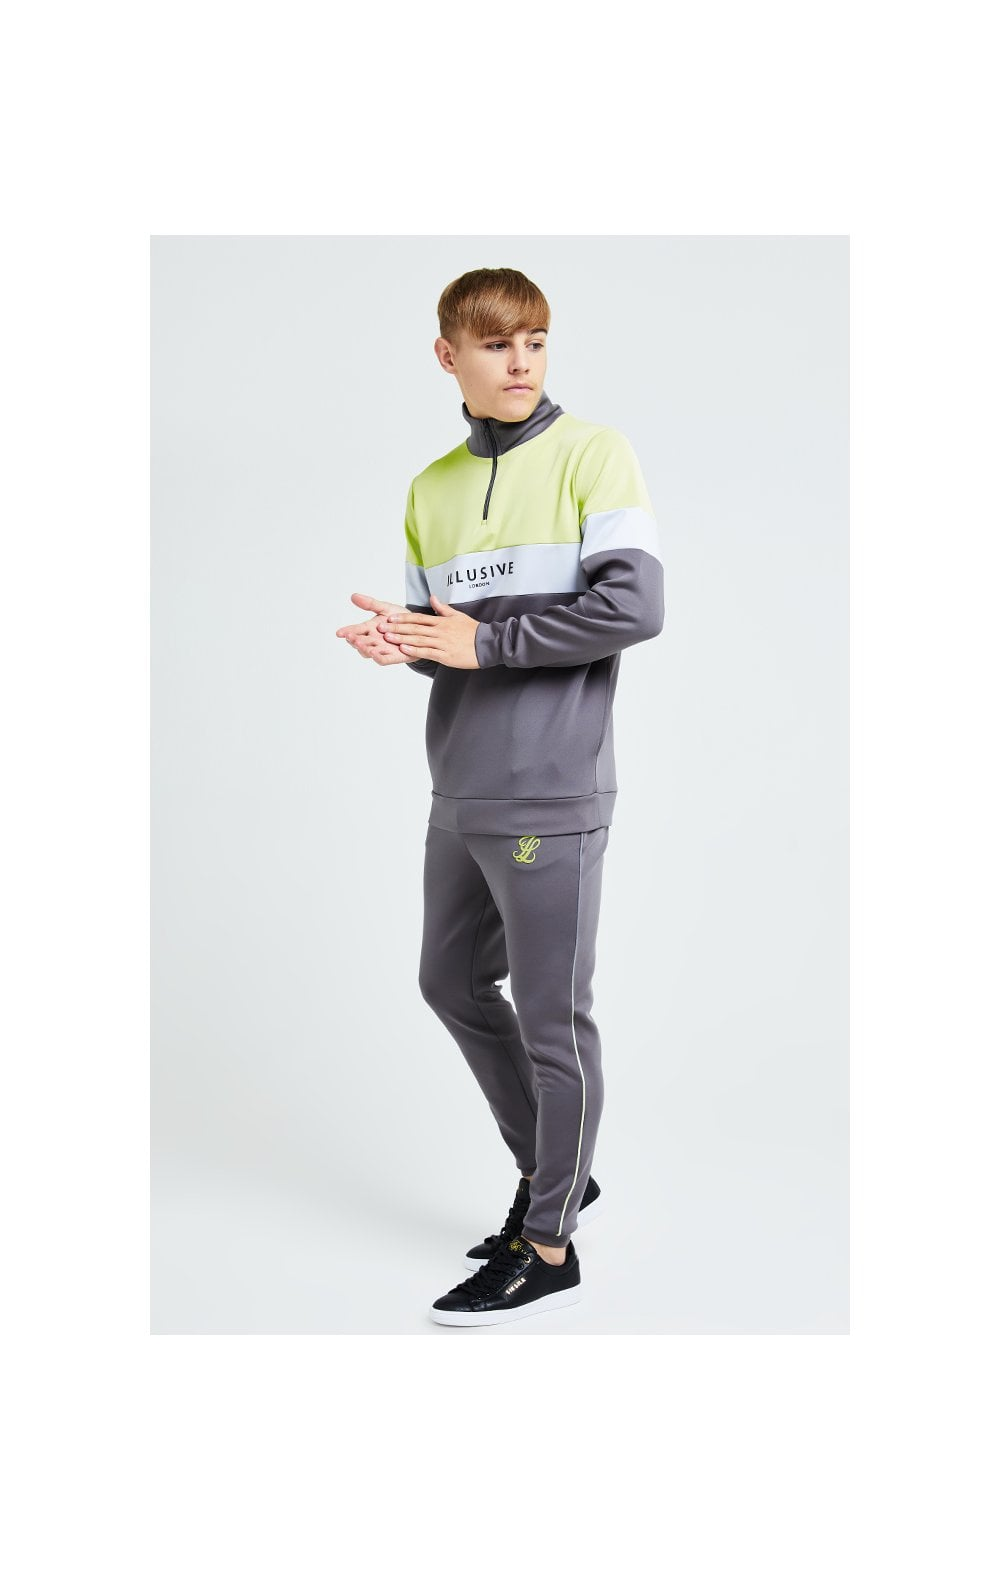 Illusive London Blaze Quarter Zip Hoodie - Dark Grey & Lime (3)